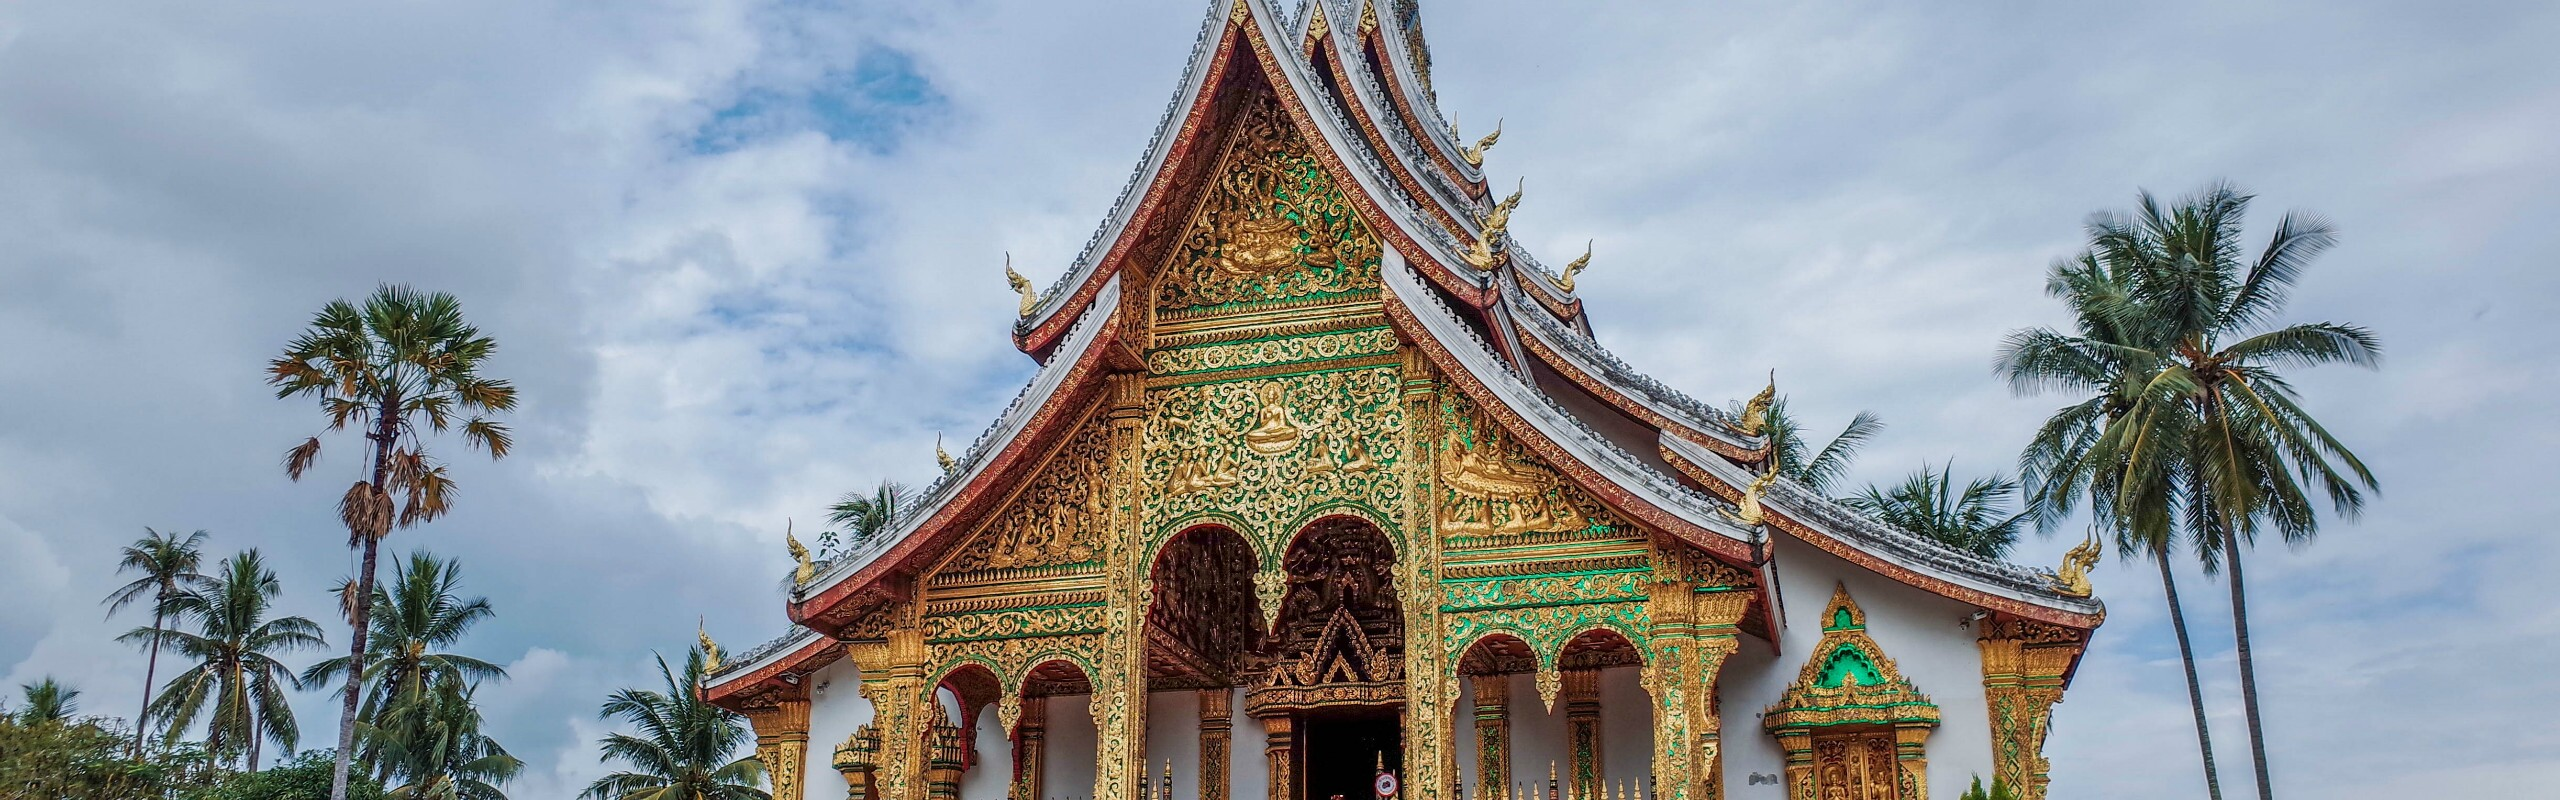 Pakse Travel Guide: Top 7 Things to Do